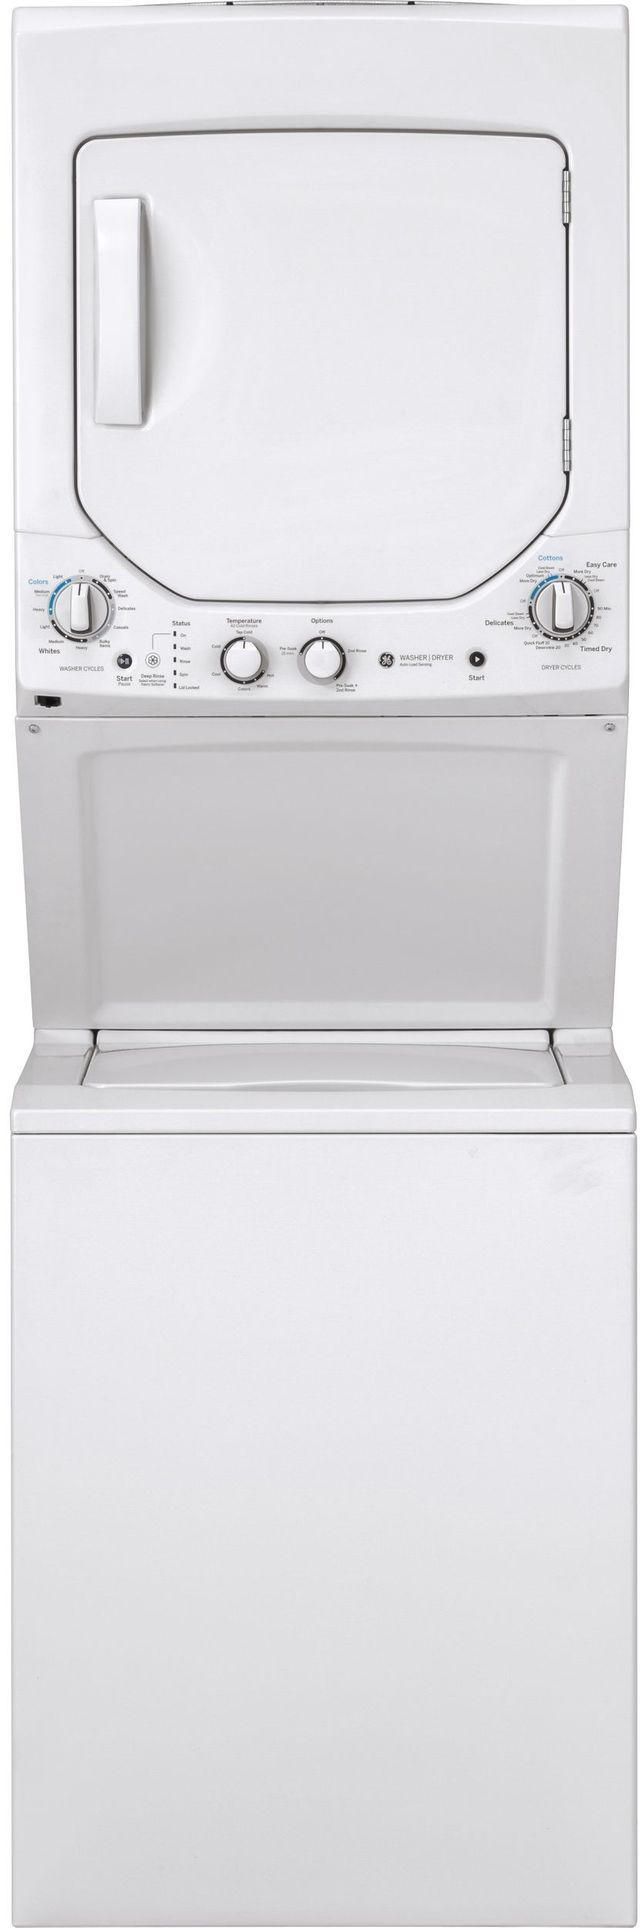 GE® Unitized Spacemaker® Stack Laundry-White On White-GUD24ESSMWW